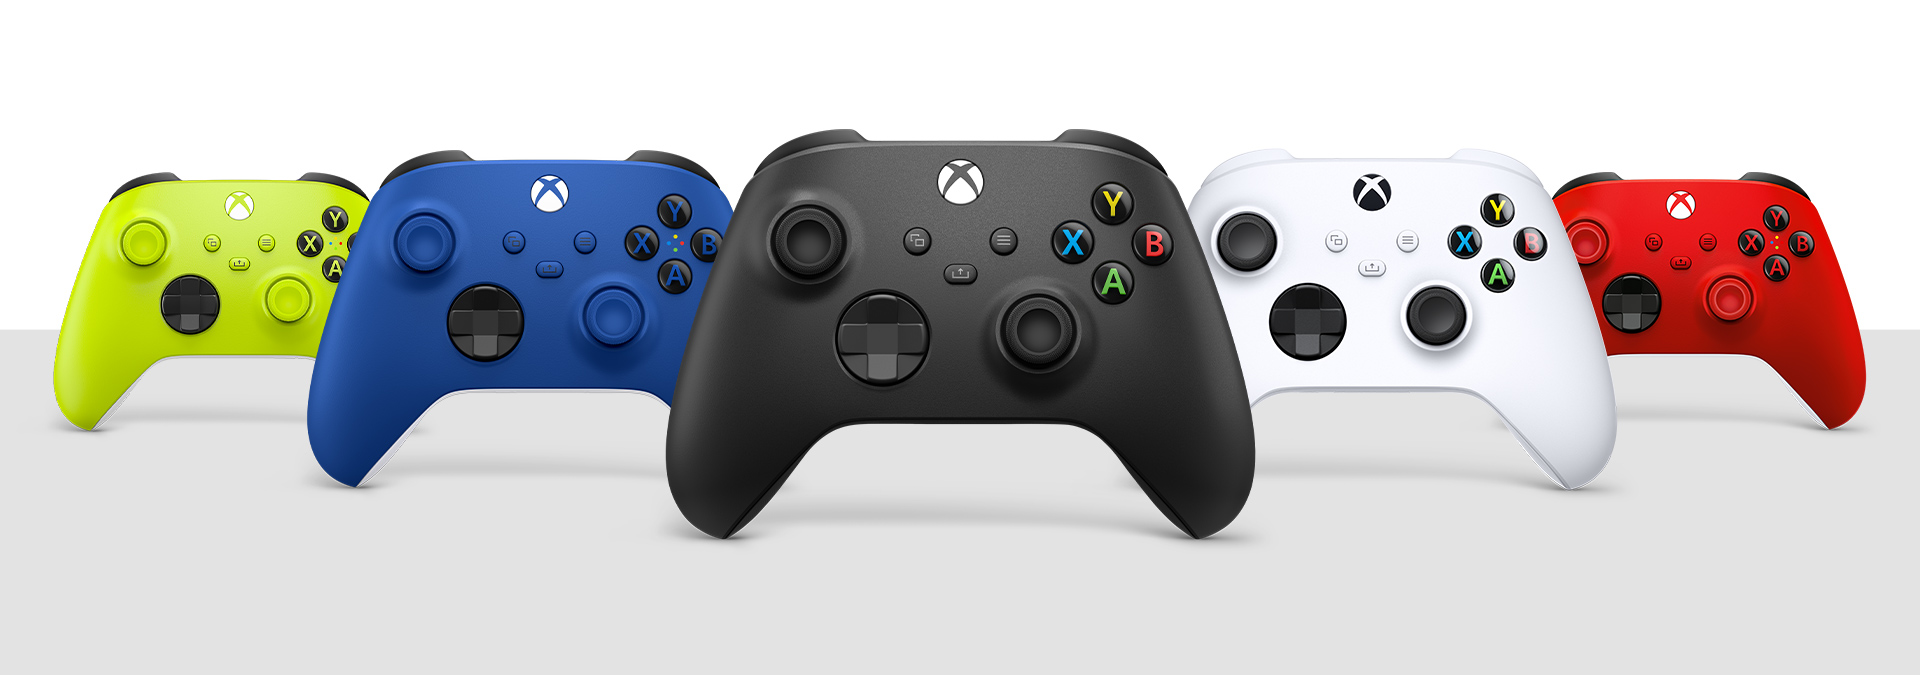 Xbox draadloze controller carbon black, robot white, shock blue, pulse red en electric volt